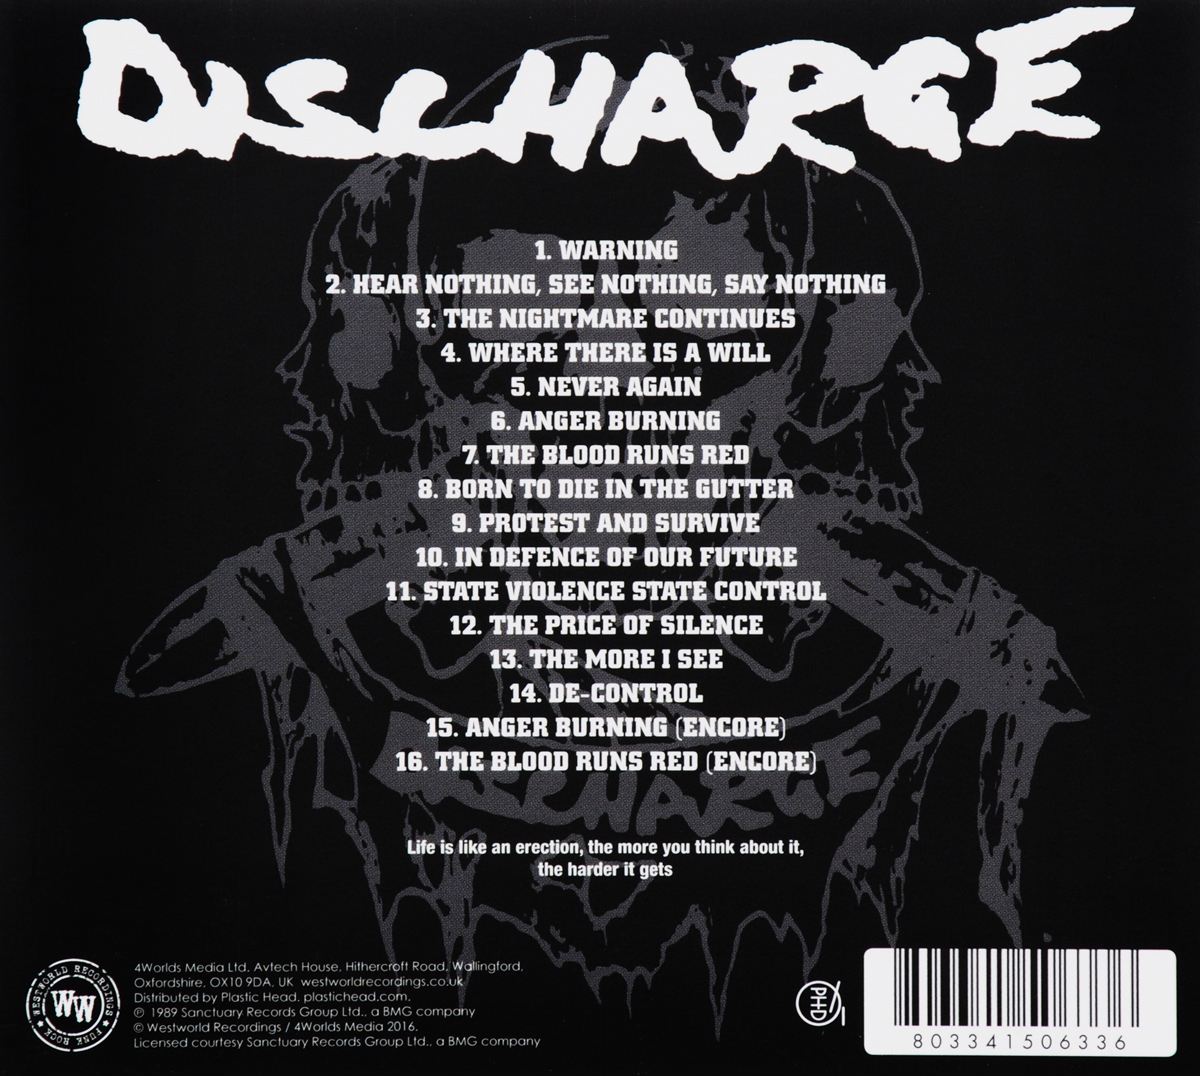 Discharge.  Live At City Garden New Jersey Волтэкс-инвест,Westworld Recordings